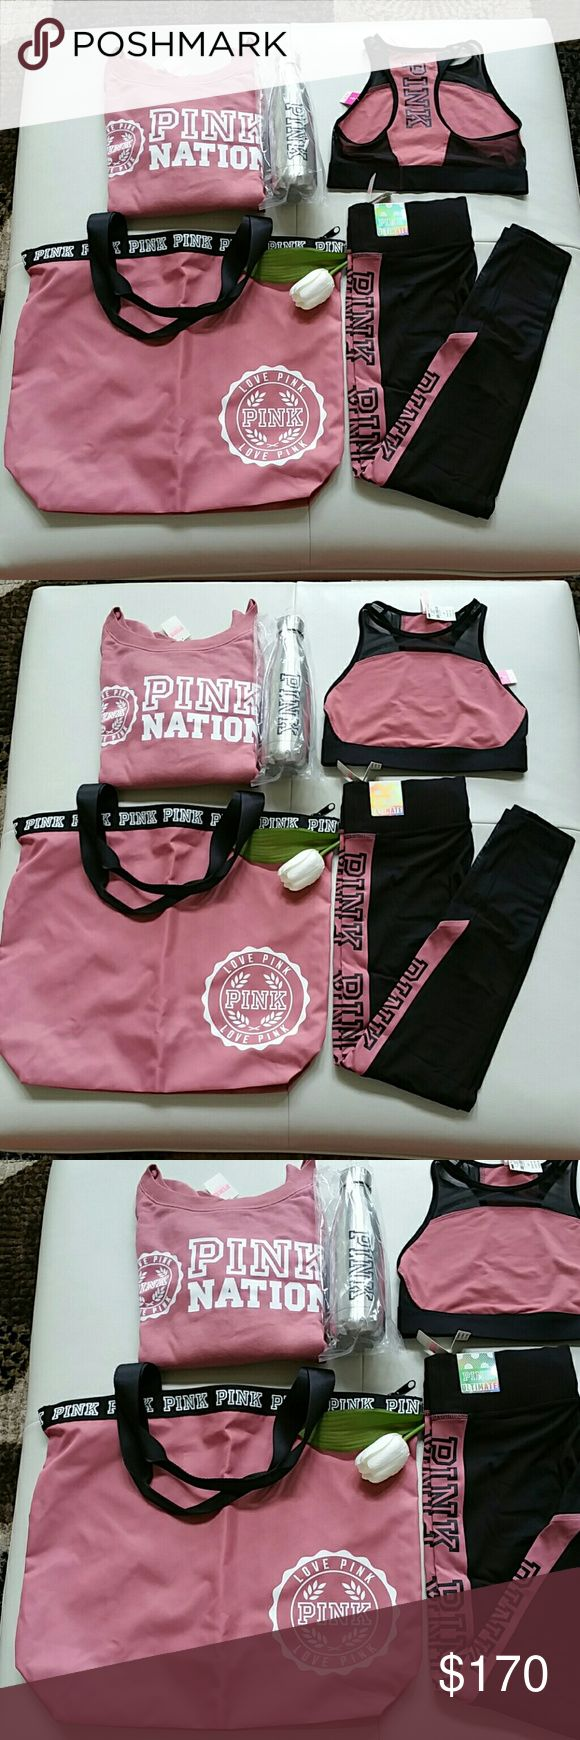 PINK VICTORIA SECRET SET SIZE SMALL. NEW WITH TAG Brand new pink victoria secret set . Slouchy crew, legging, top,waterbottle, tote,backpack.  Great for gift  Size Small.  New with tag never worn,never try  Smoke and pet free home. Fast shipping + extra gift.  Price firm bc 20% posh fee. PINK Victoria's Secret Tops Sweatshirts & Hoodies